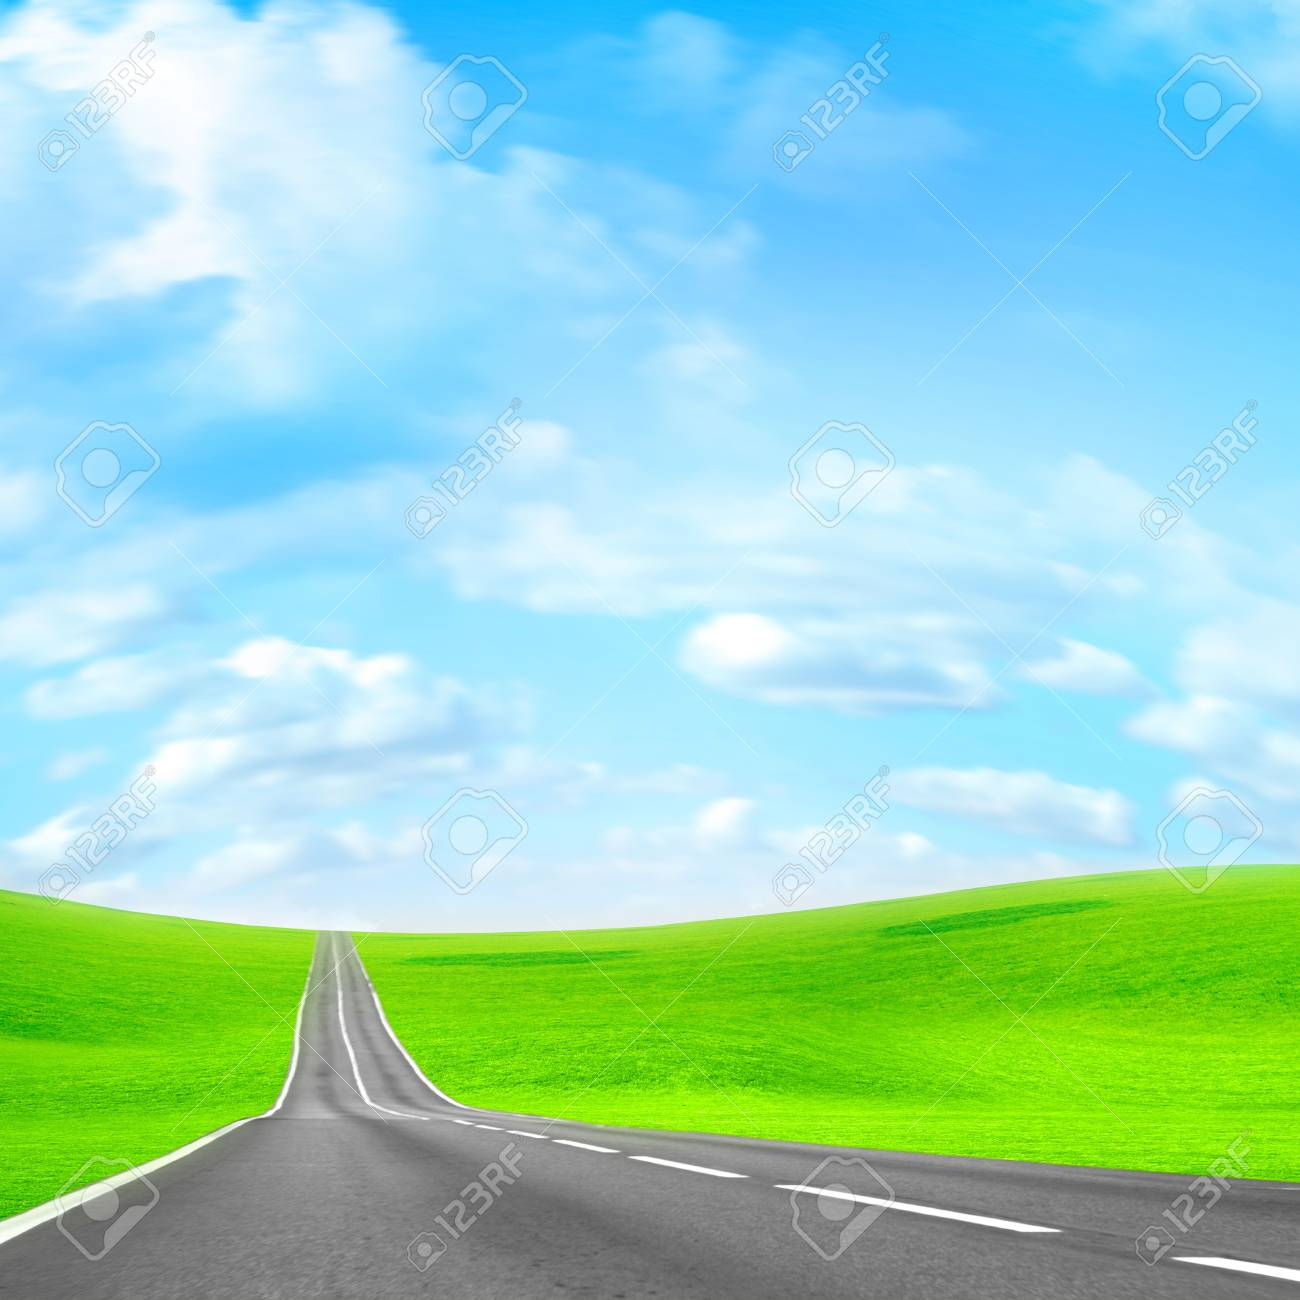 abstract scene of the road under blue sky Stock Photo - 4456492